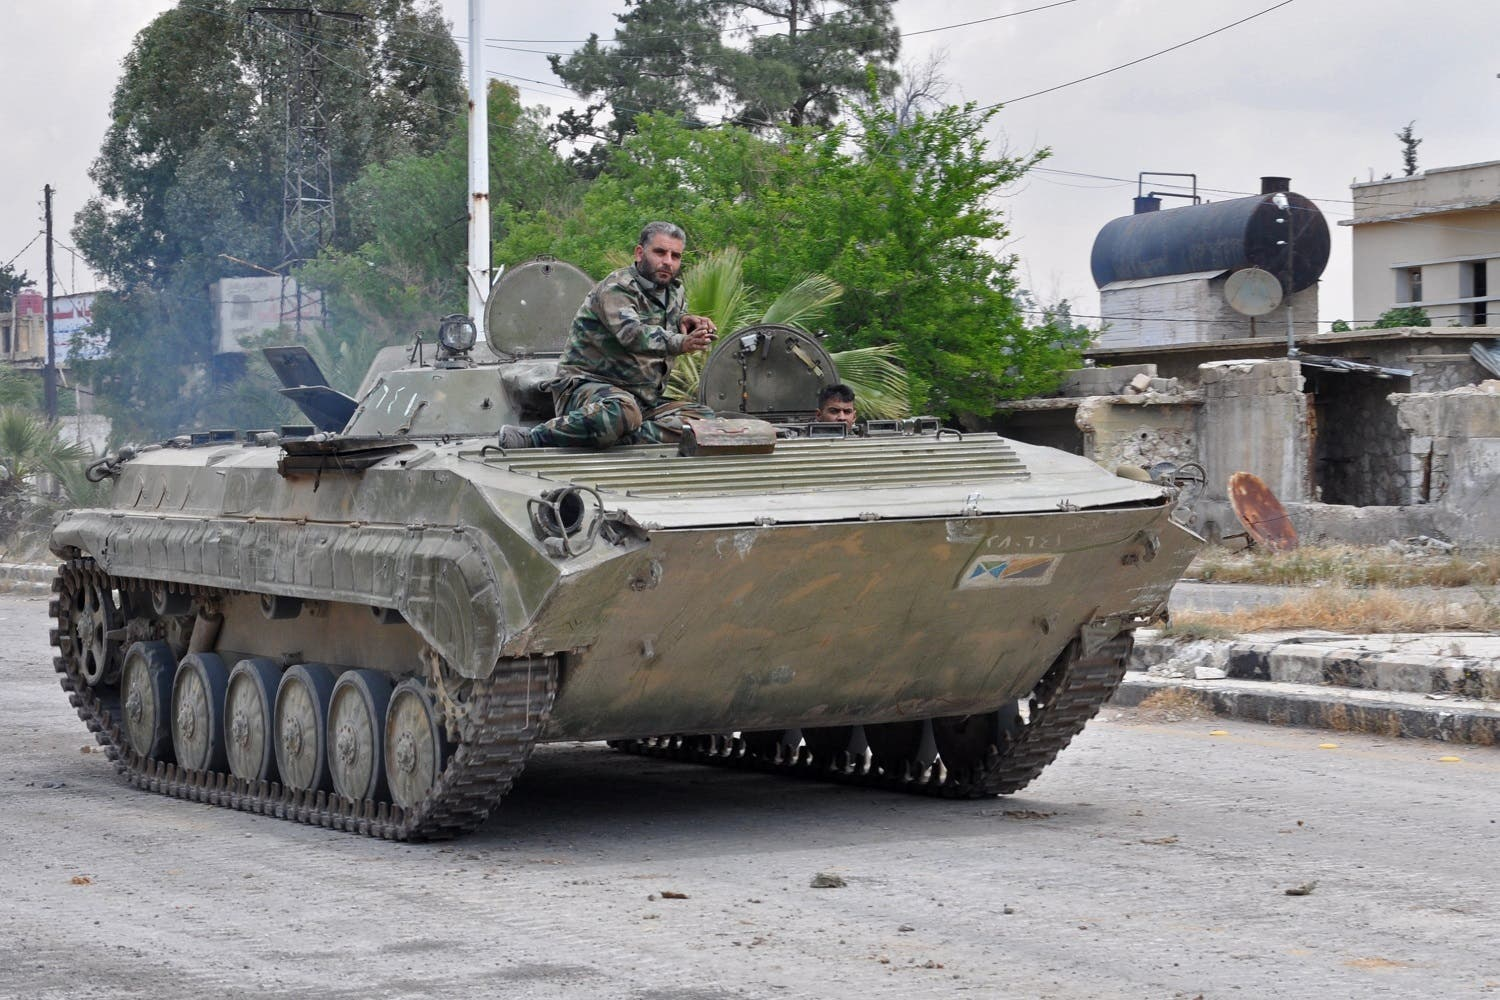 Syrian government soldiers drive an armored personal vehicle in Al Ḩajar al Aswad, on April 22, 2018, during a regime offensive targeting ISIS in the southern districts of Damascus. (AFP)